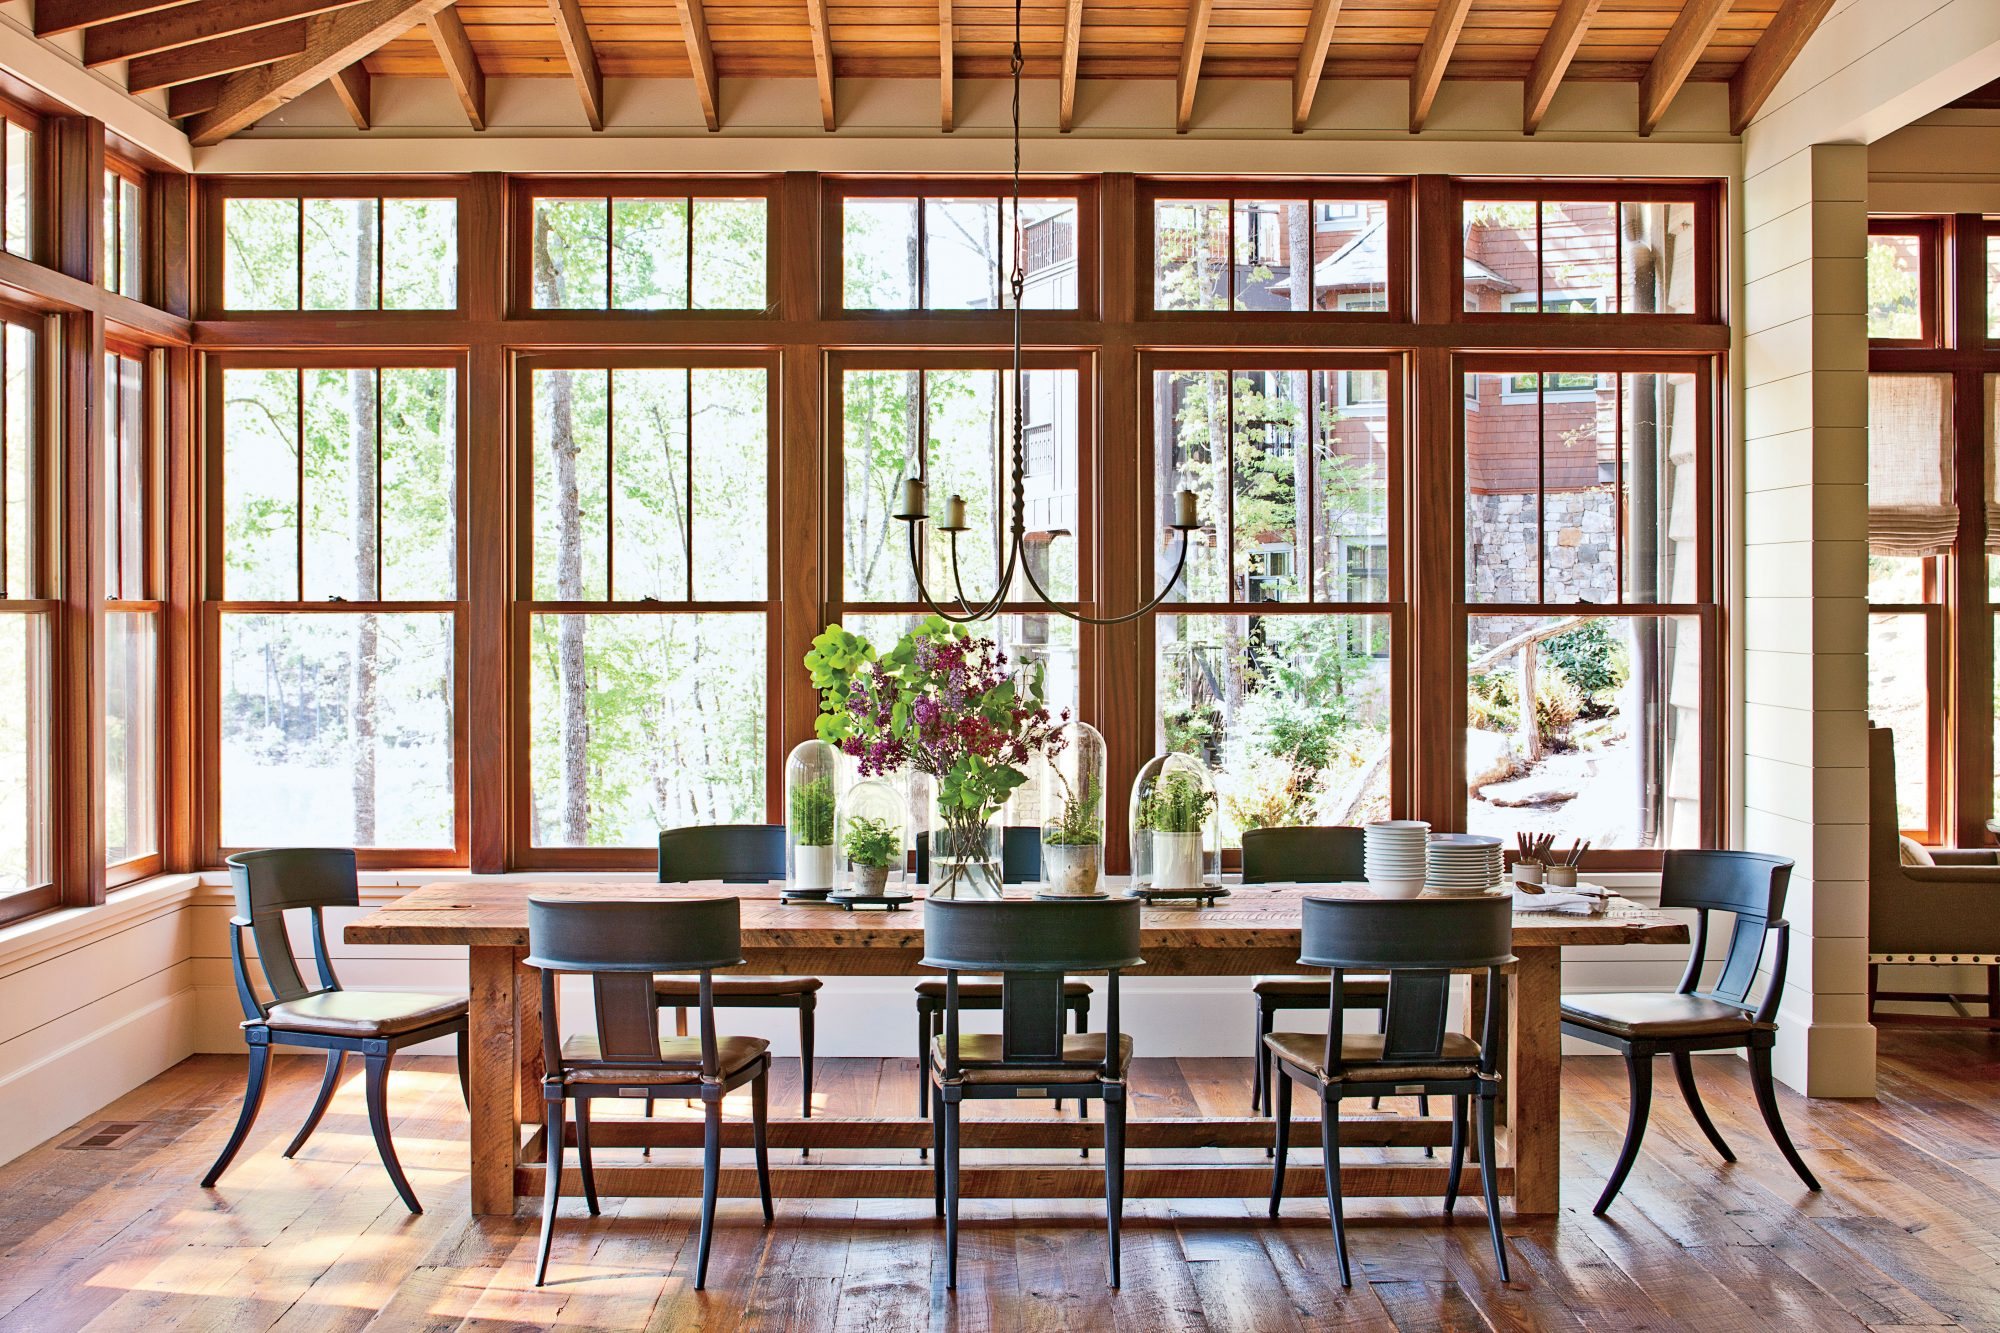 Dining Room with Lots of Windows